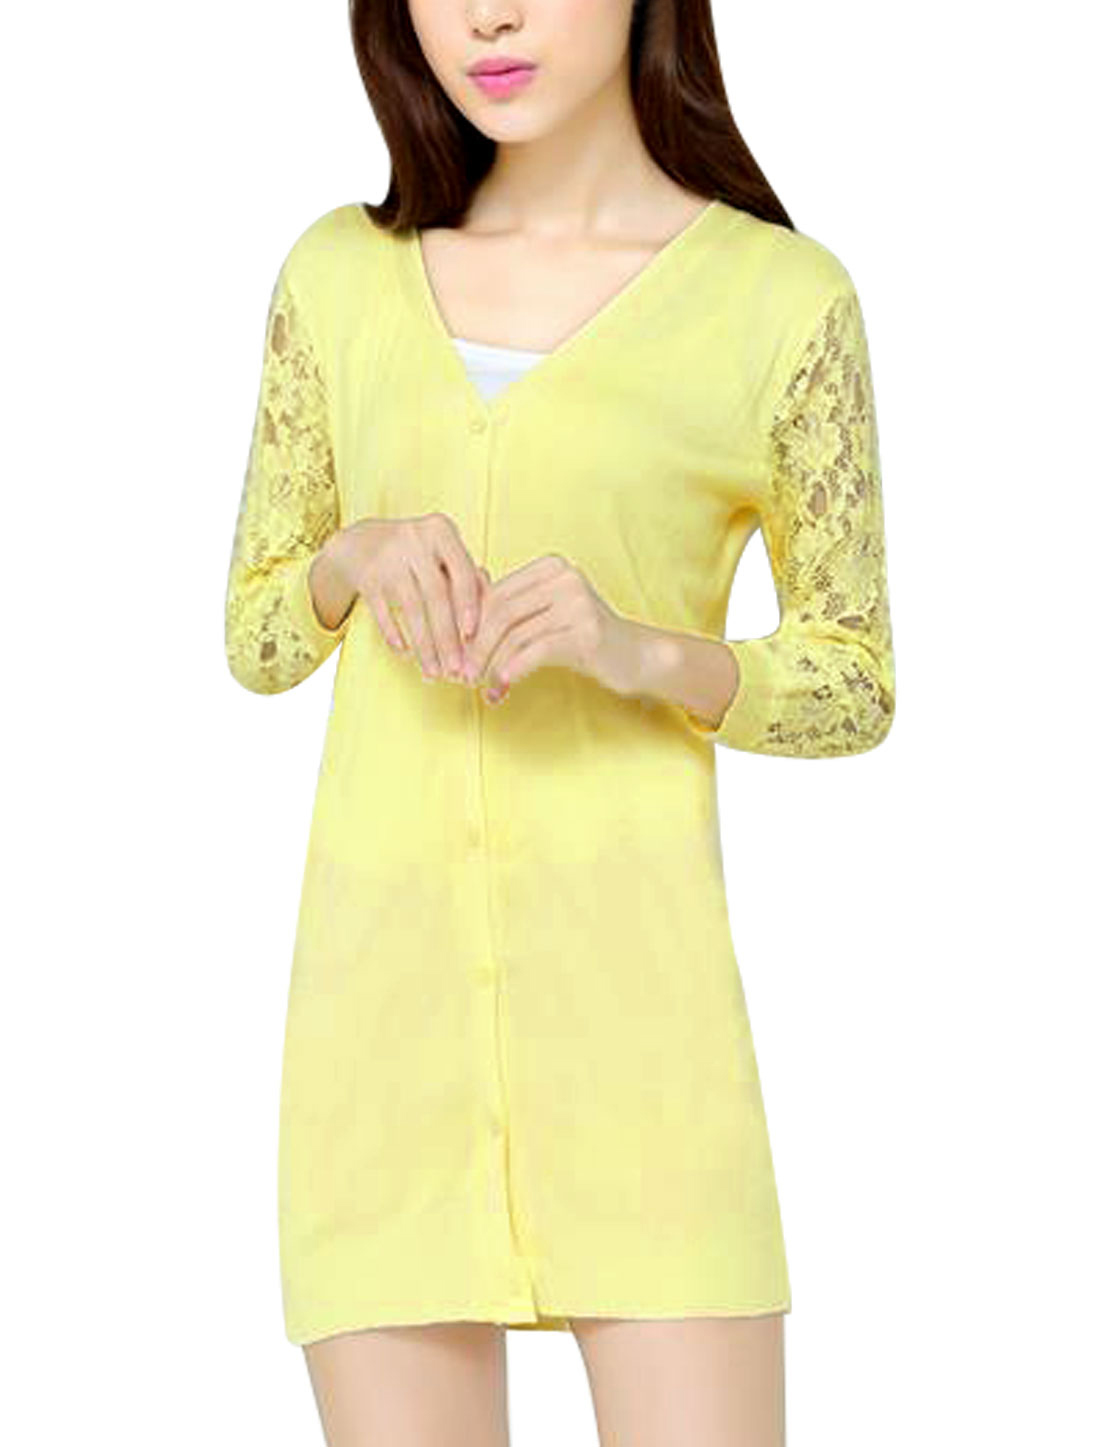 Women Plunging Neck 3/4 Sleeves Button Down Fashion Knit Cardigan Light Yellow S